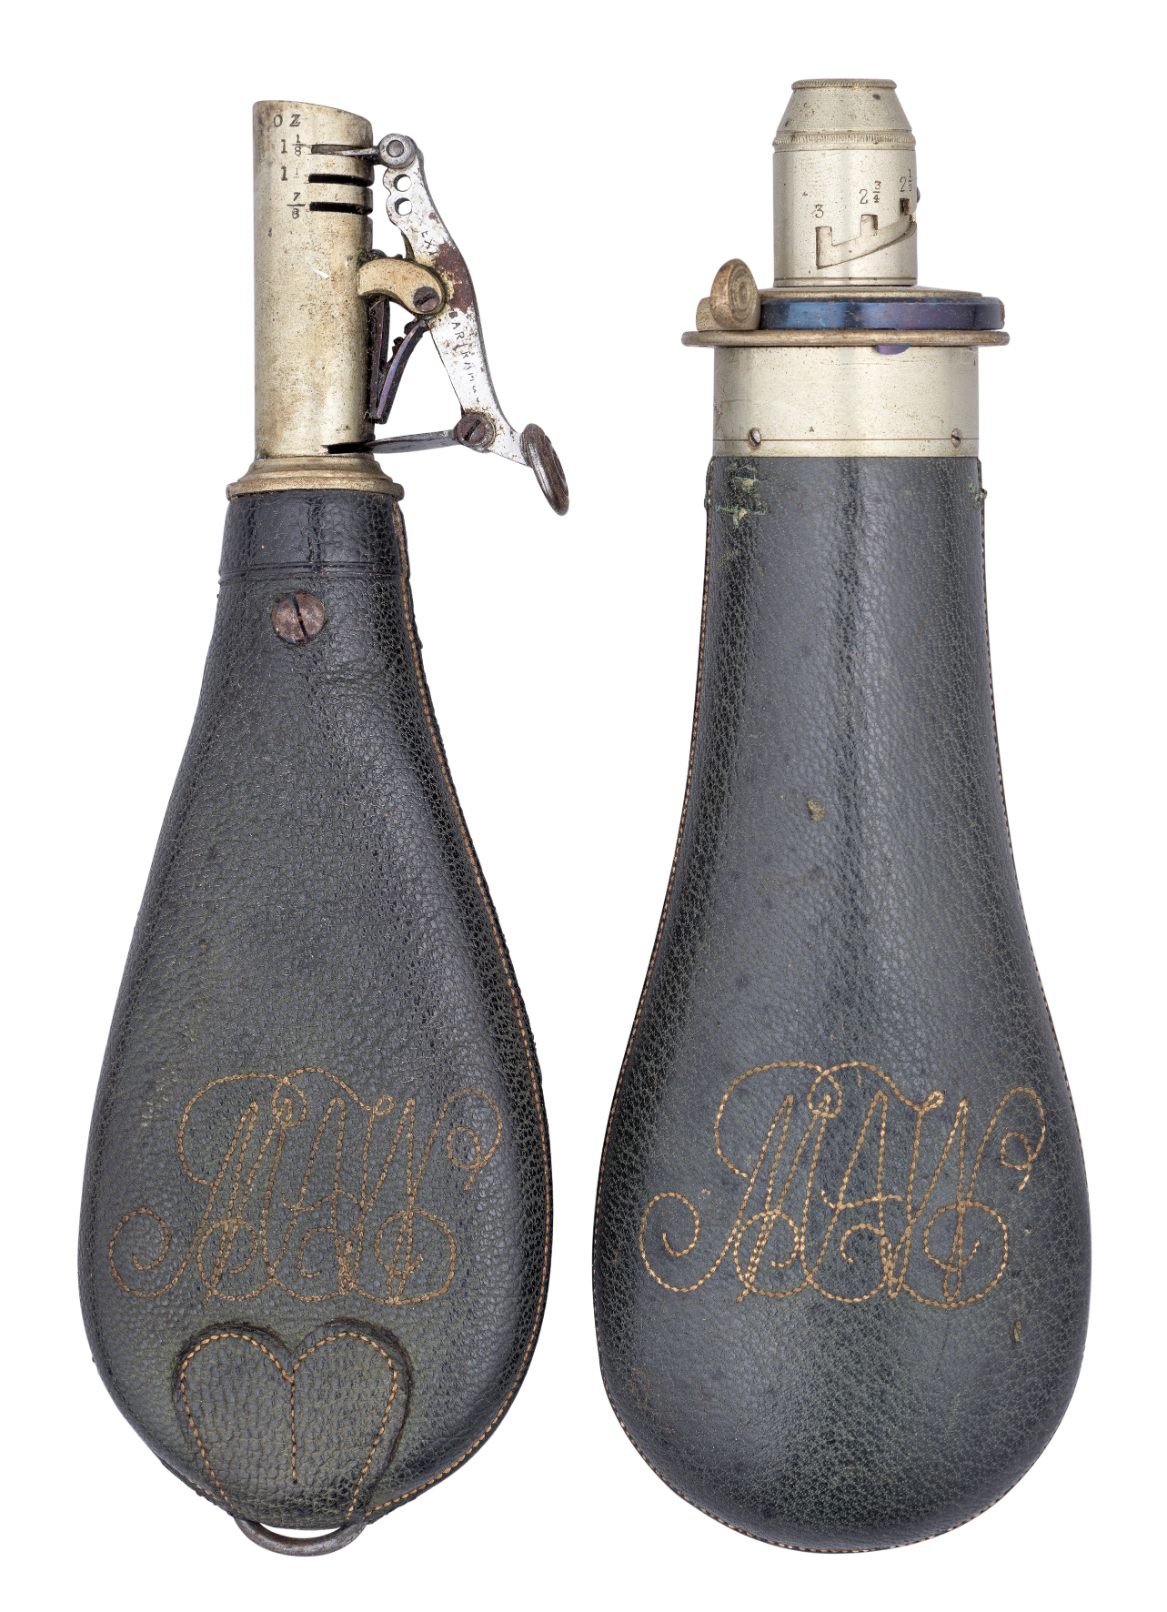 Ⓦ A POWDER-FLASK AND SHOT-FLASK BY BARTRAM & CO^ MID-19TH CENTURY AND EIGHT FURTHER SHOT-FLASKS^